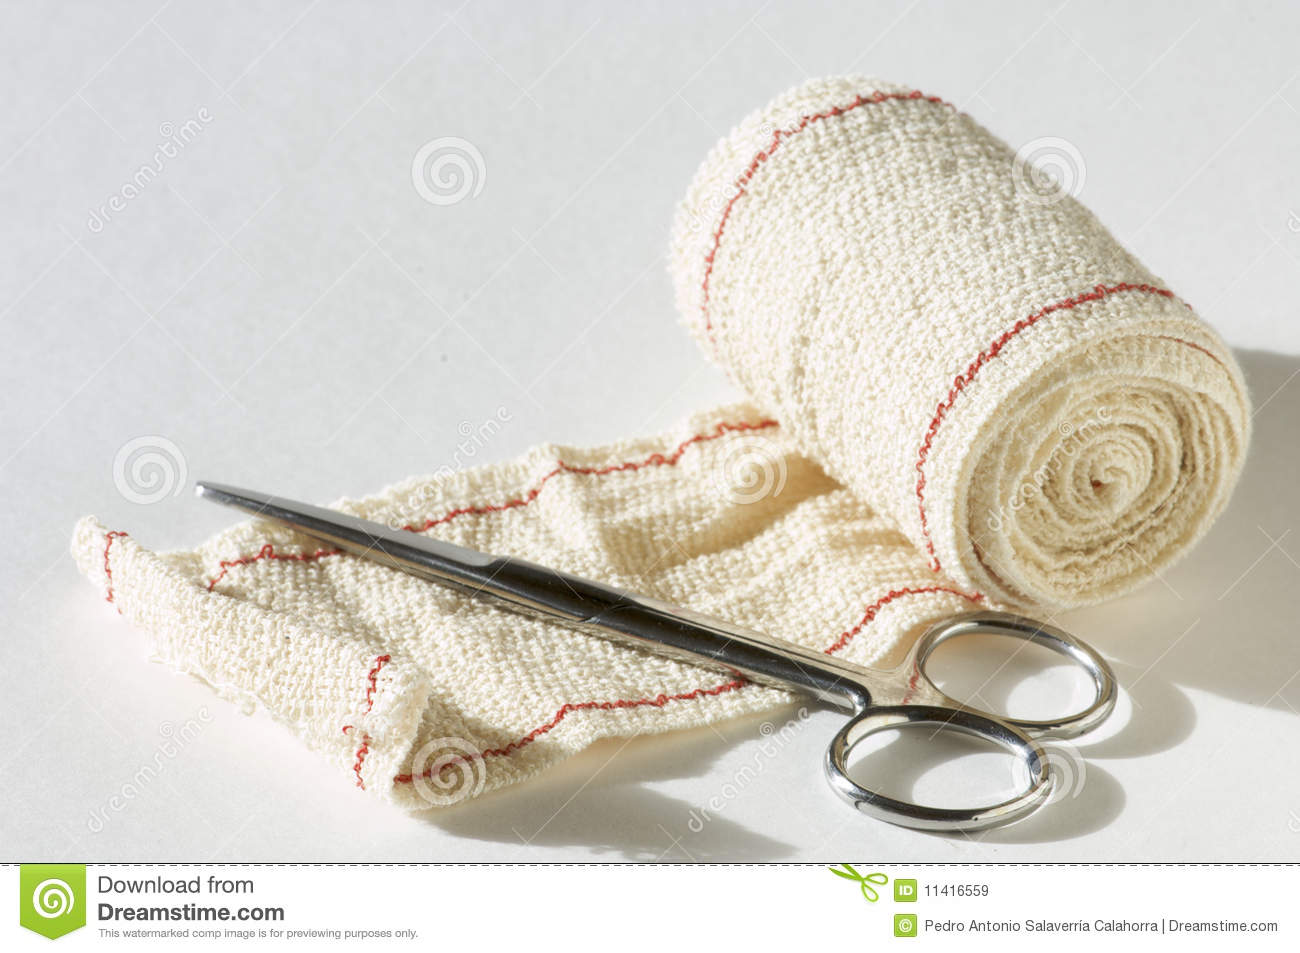 Medical Scissors And Bandages With White Background